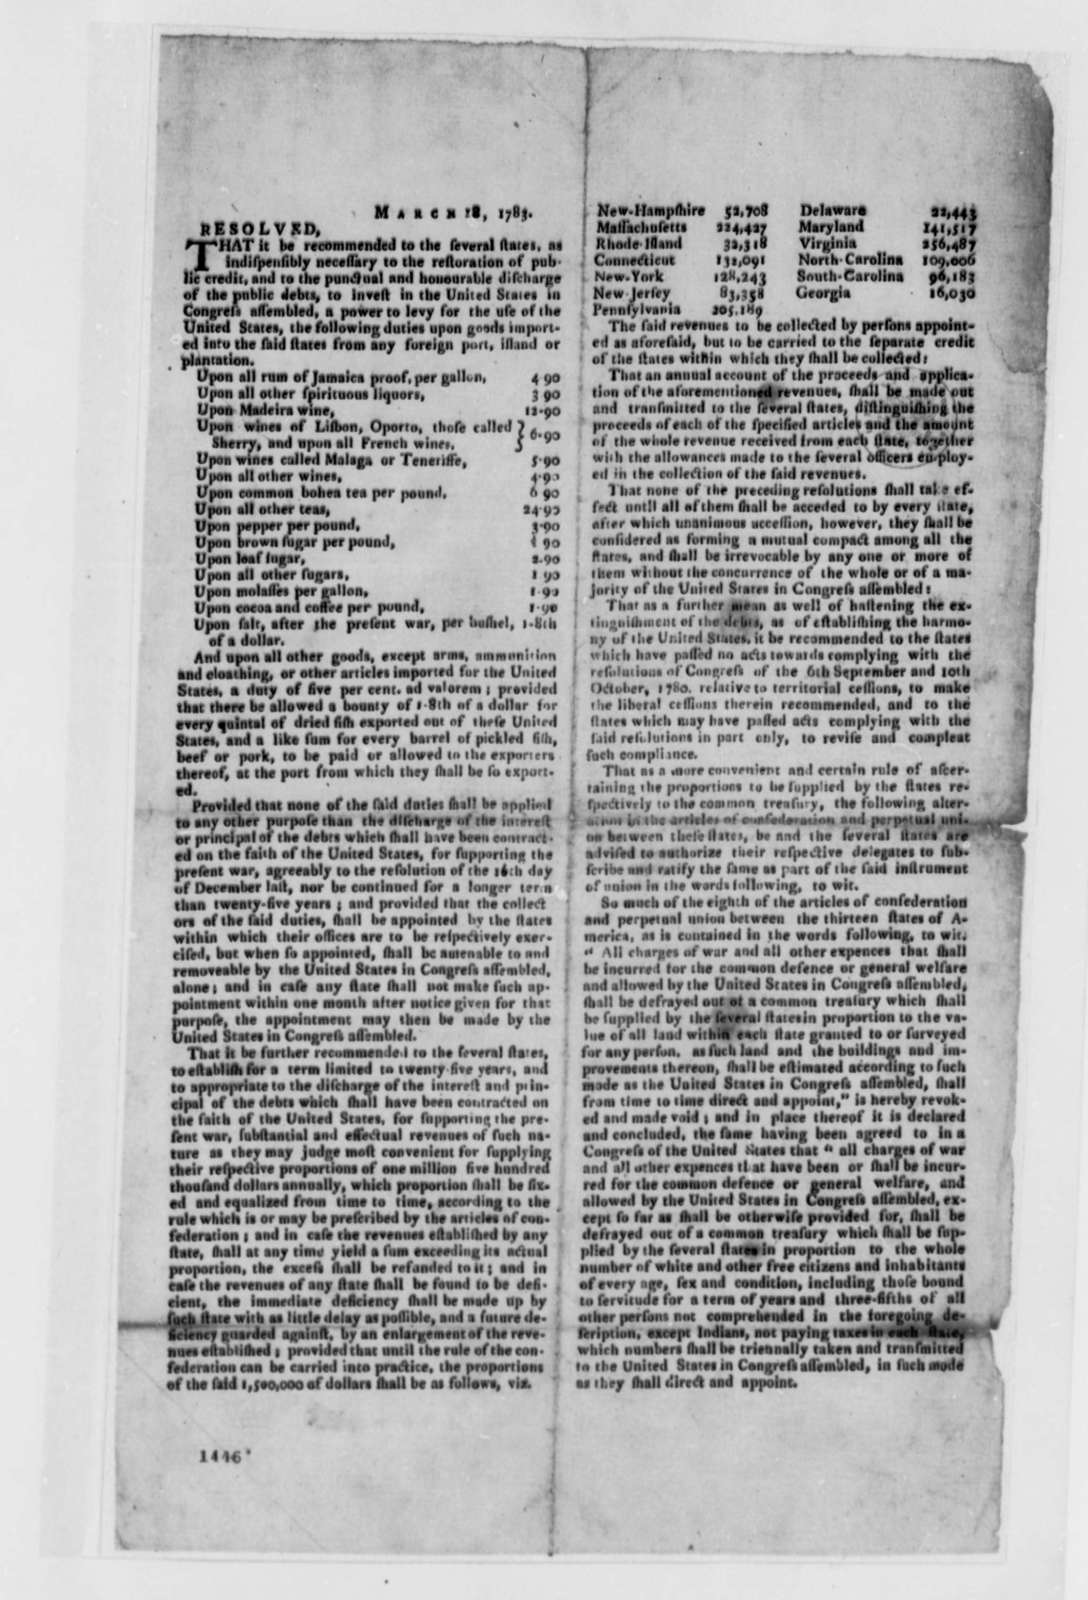 United States Congress, March 18, 1783, Printed Resolution on Import Duties